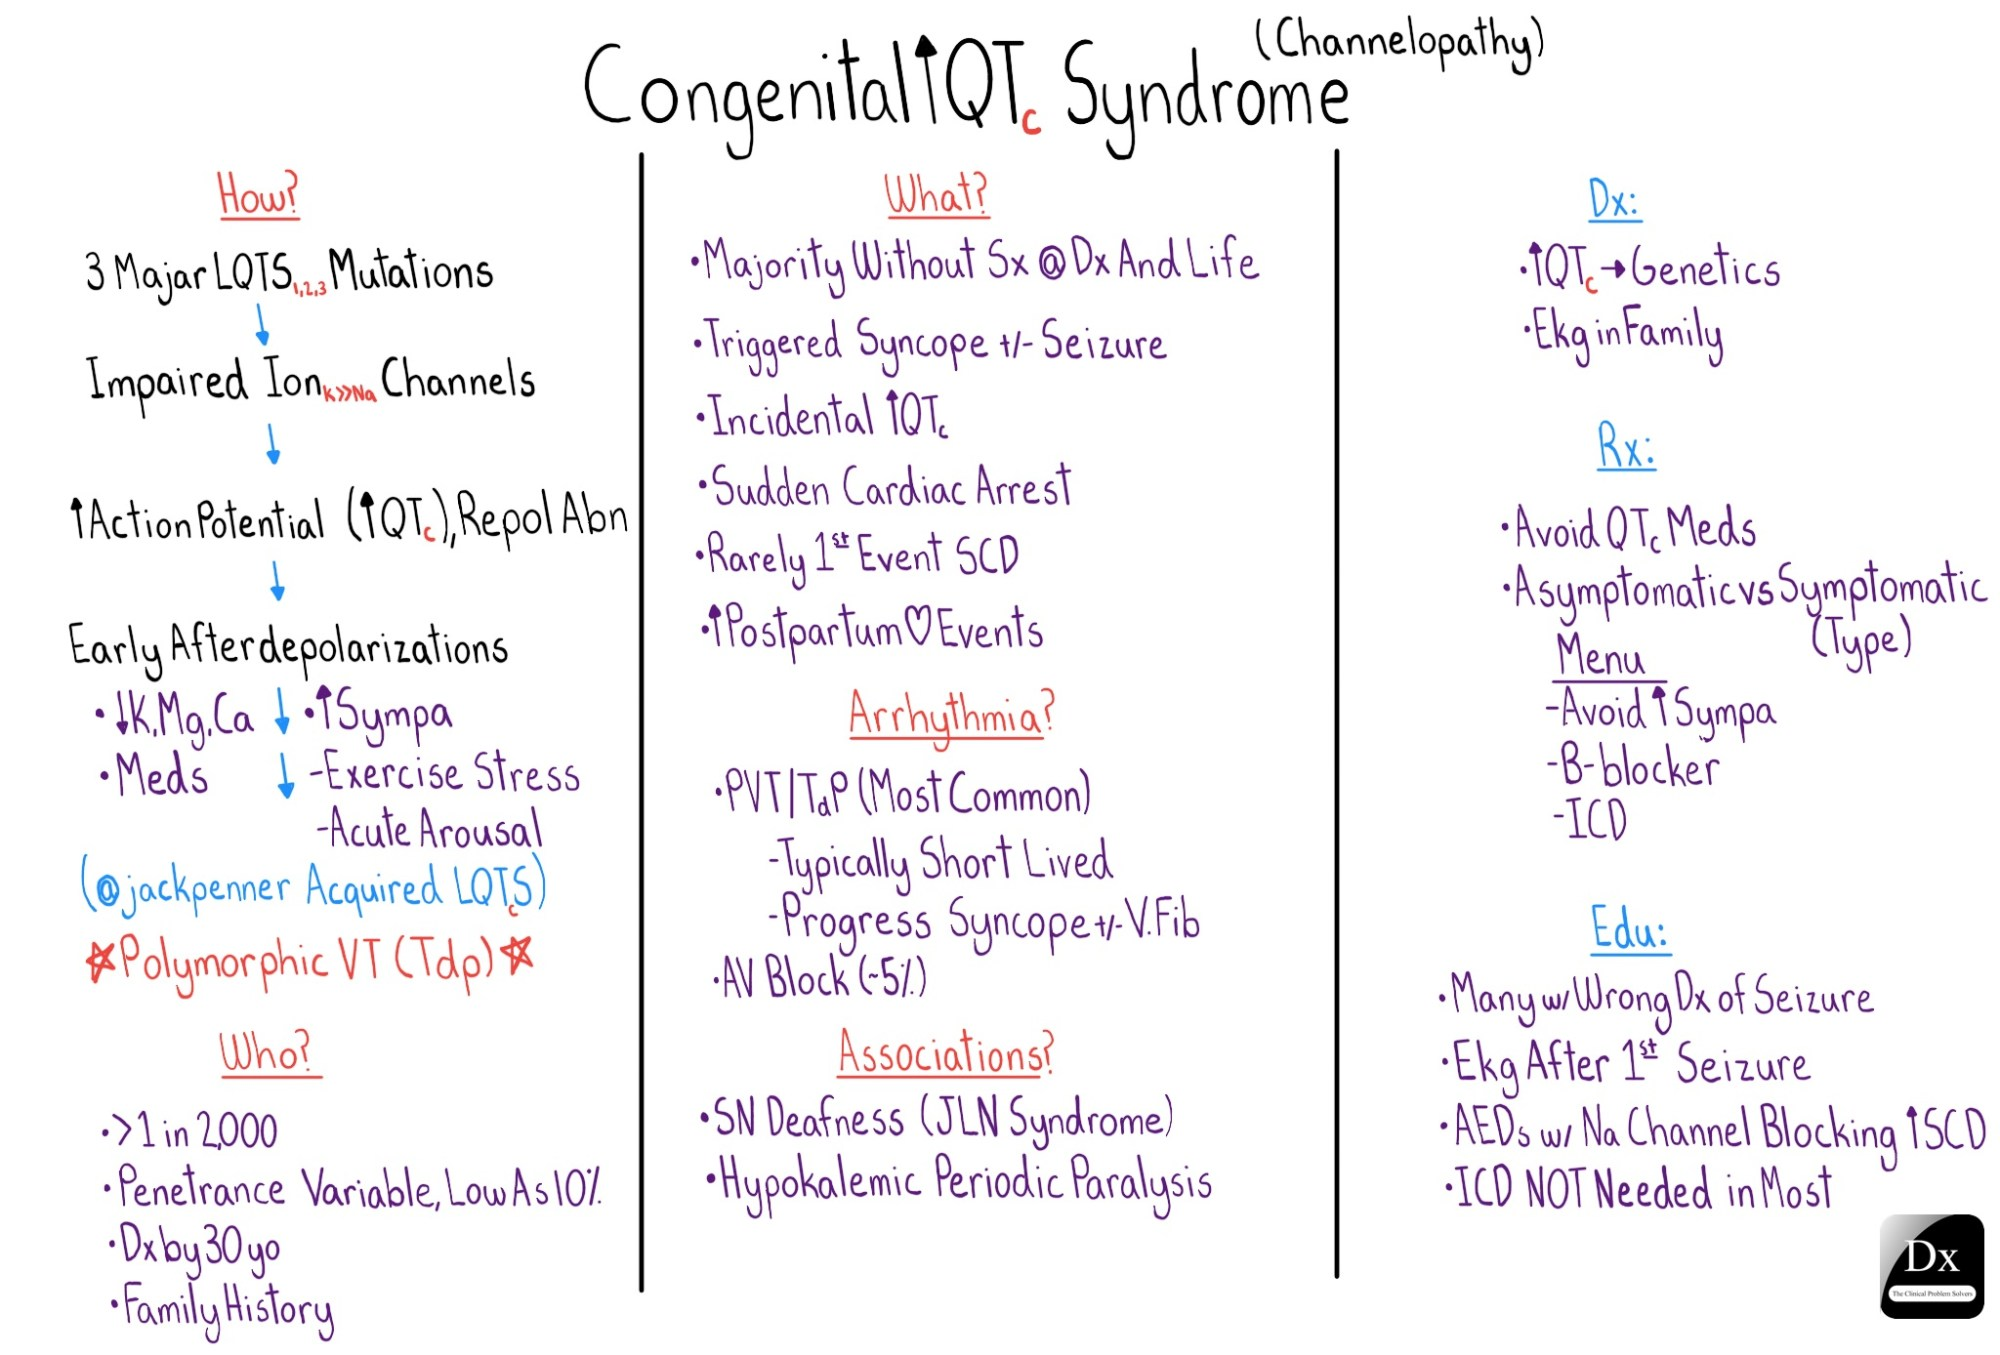 Congenital LCTS